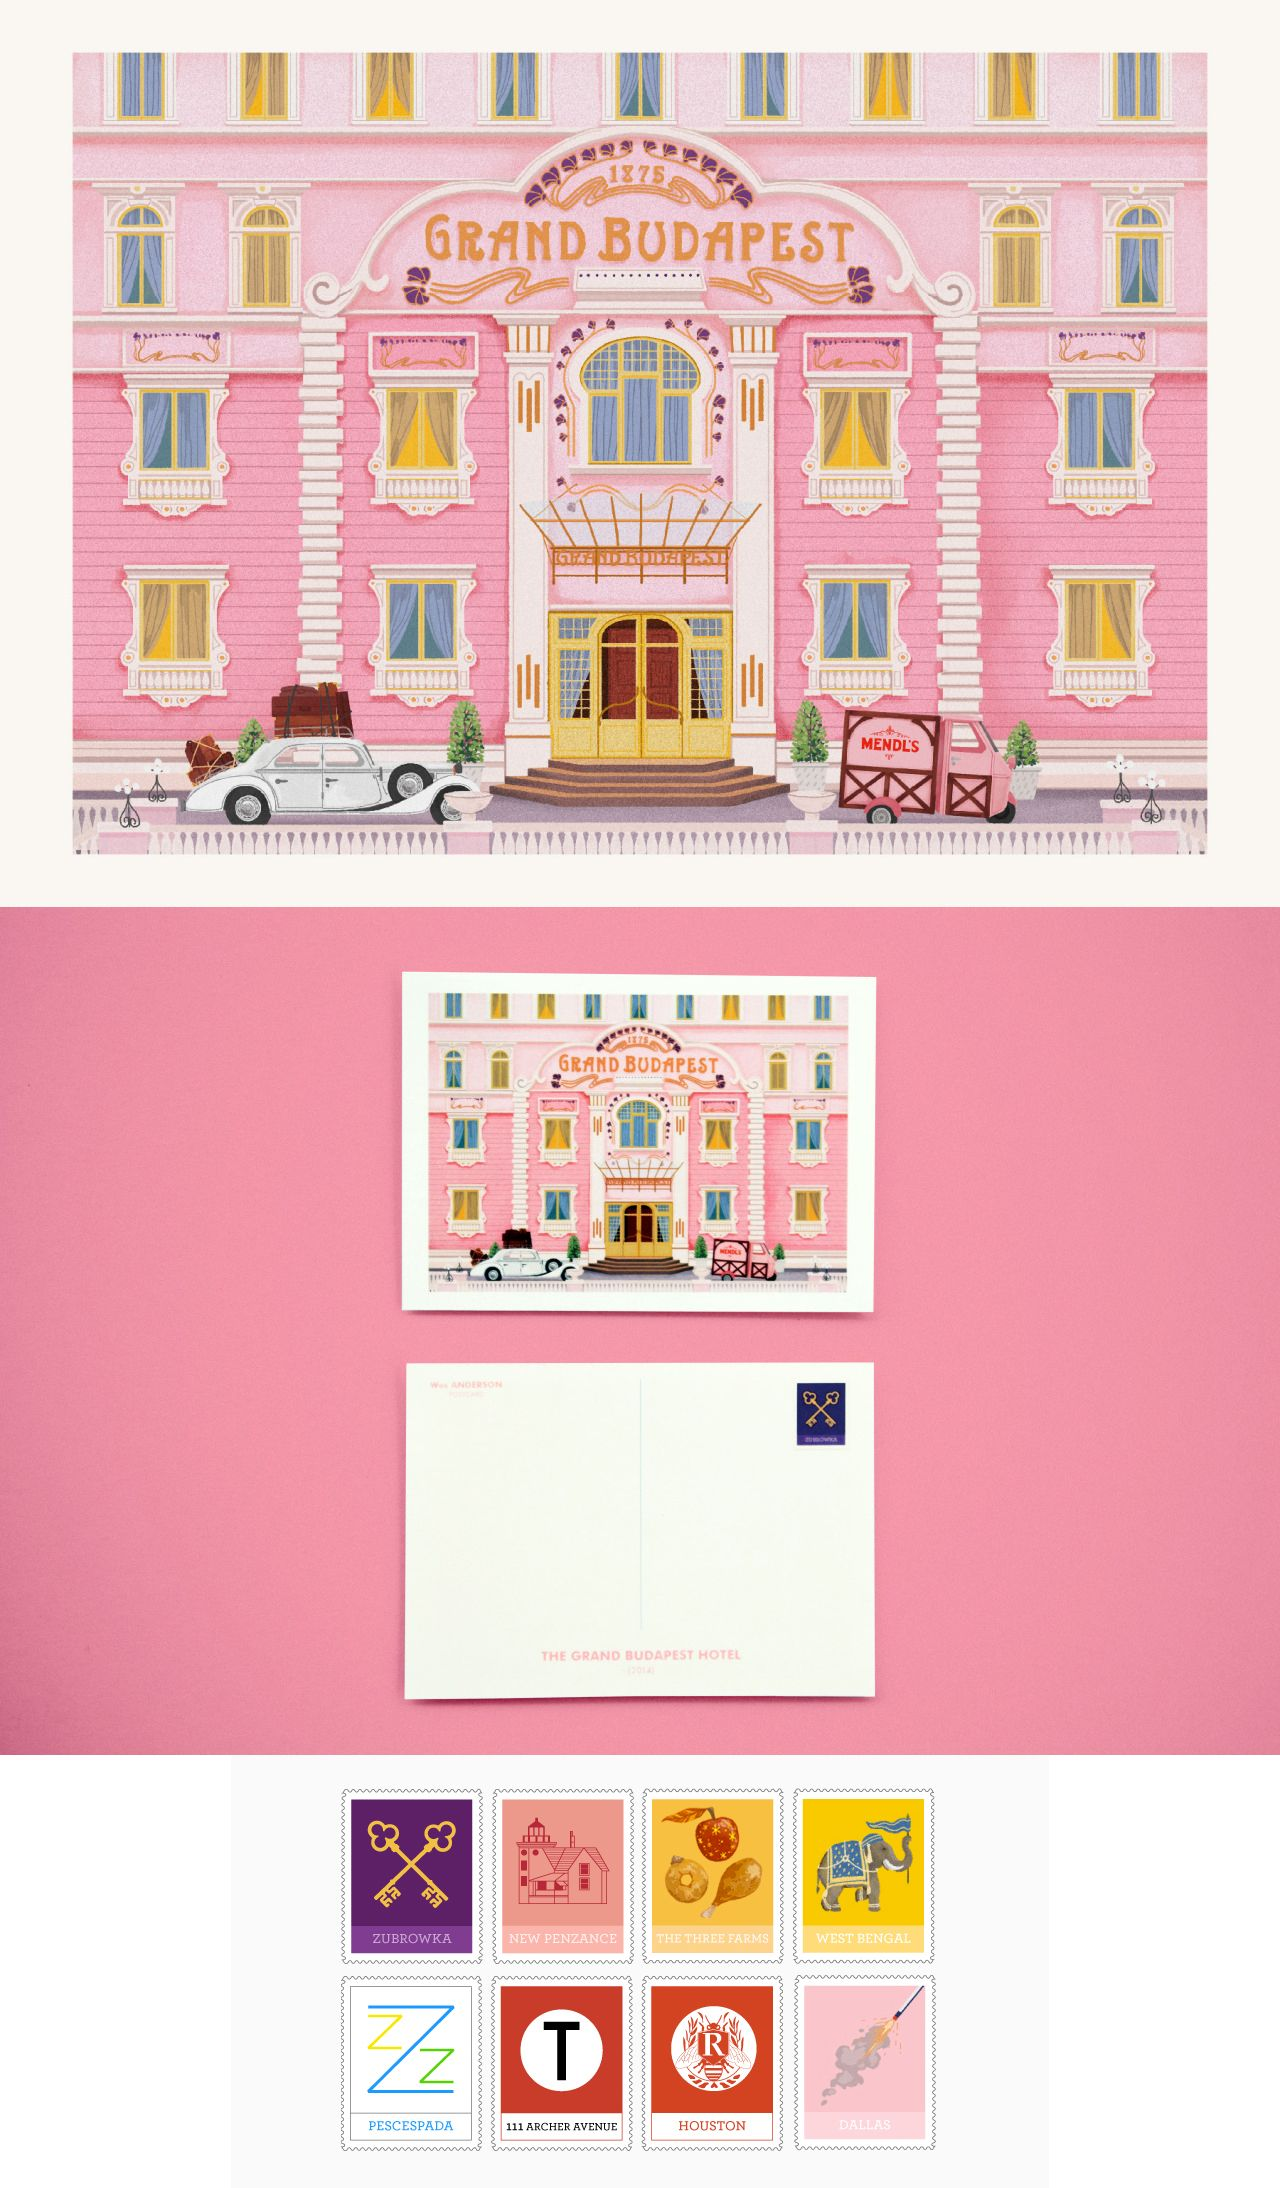 wes anderson postcards wes anderson movies anderson movies and  wes anderson movie postcards the grand budapest hotel they even have custom